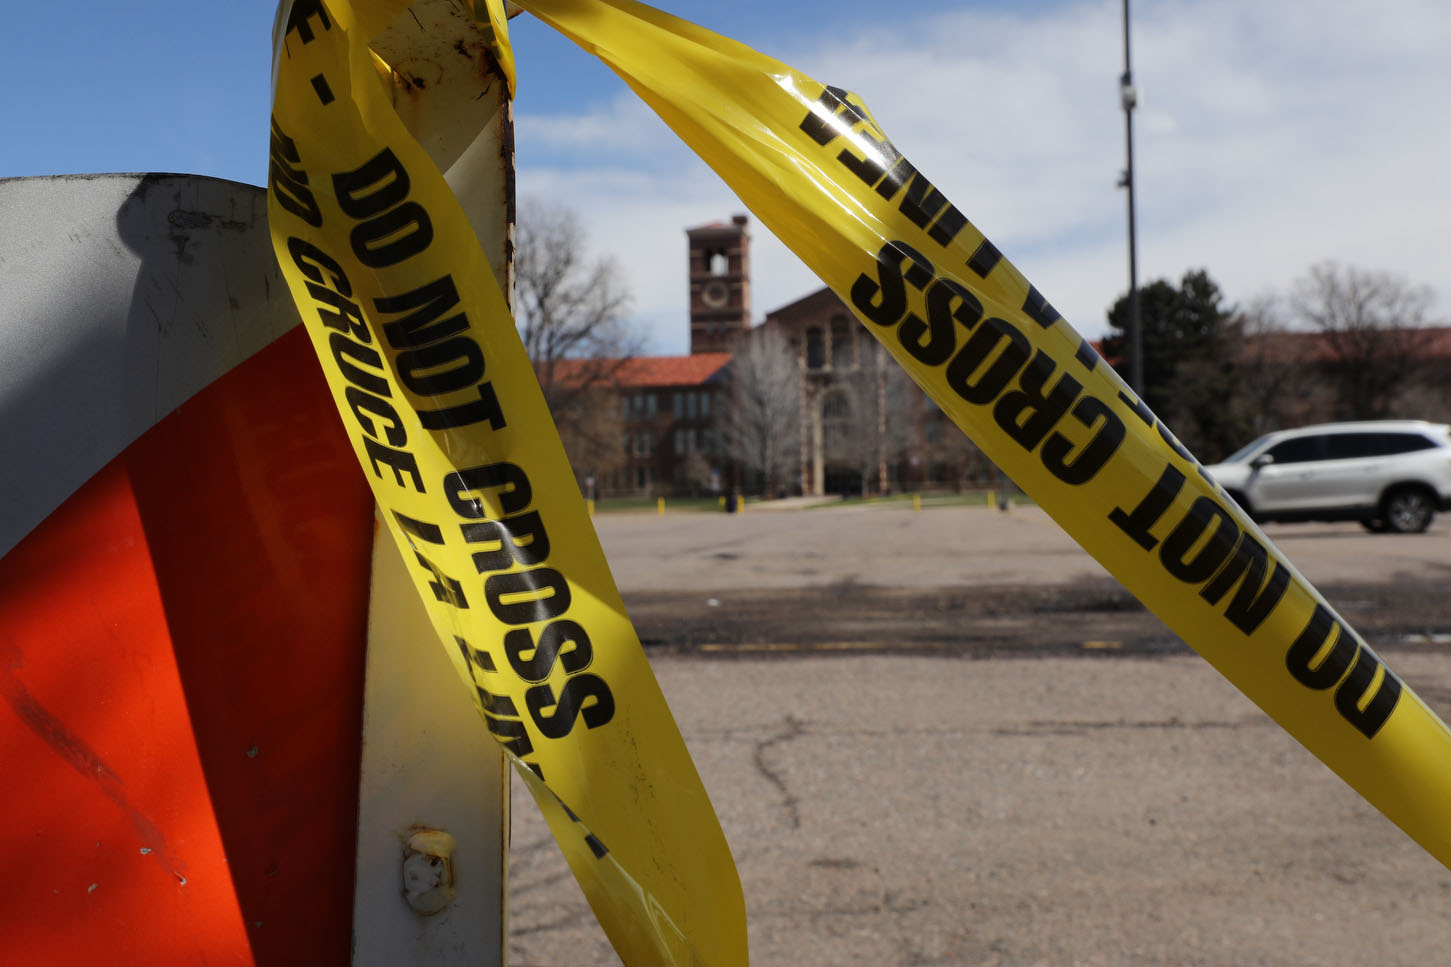 Denver South High School Pasrking Lot Police Tape